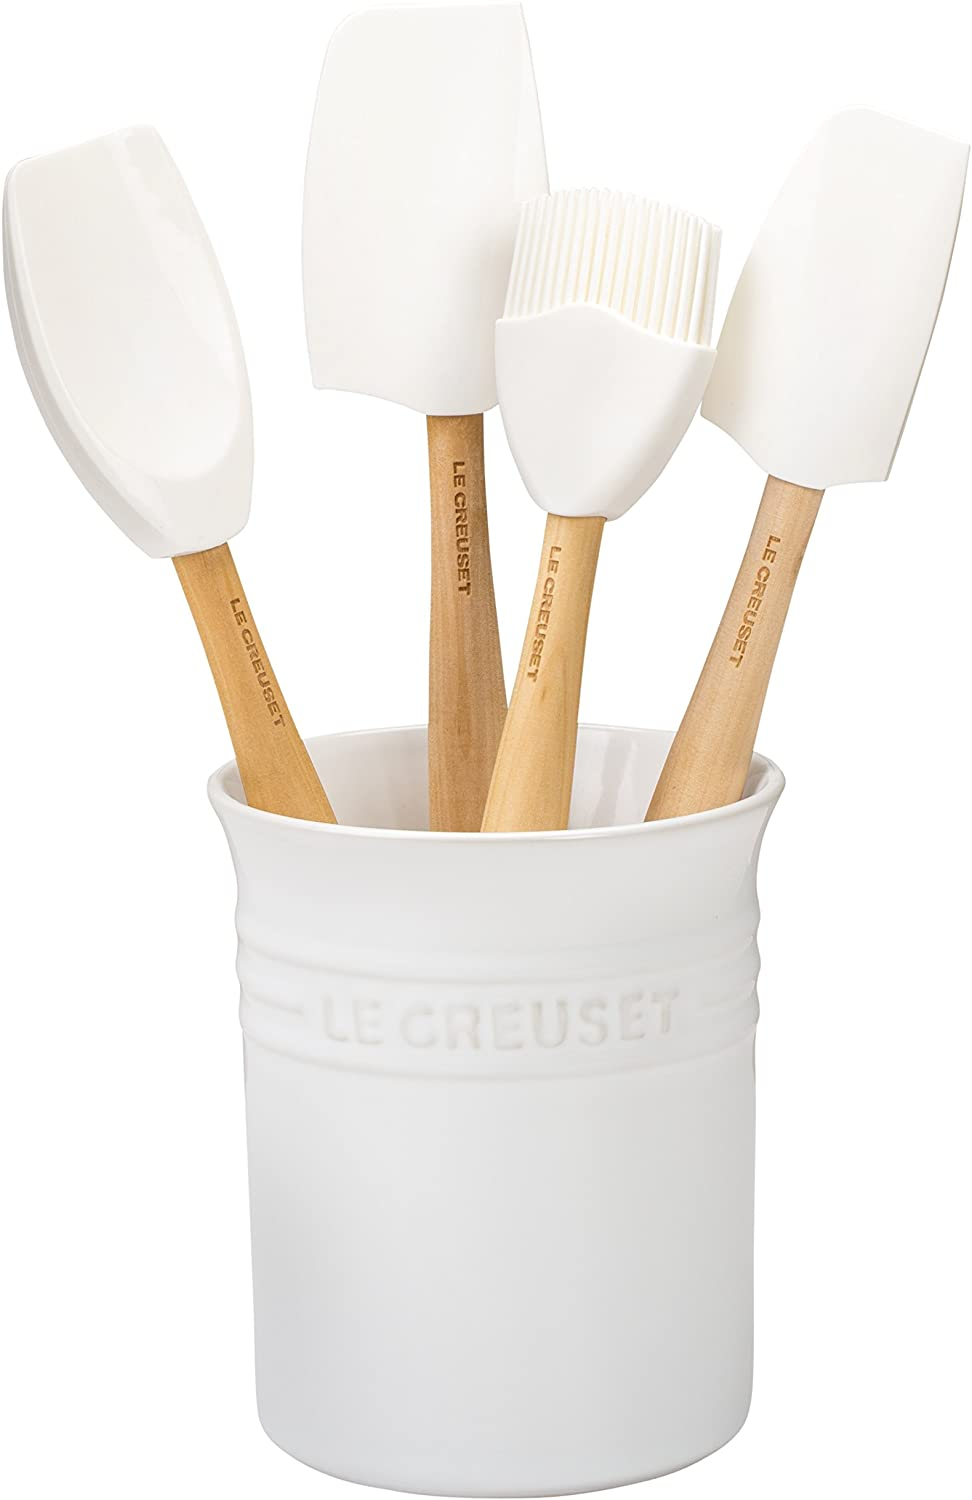 gifts-for-mother-in-law-utensil-set